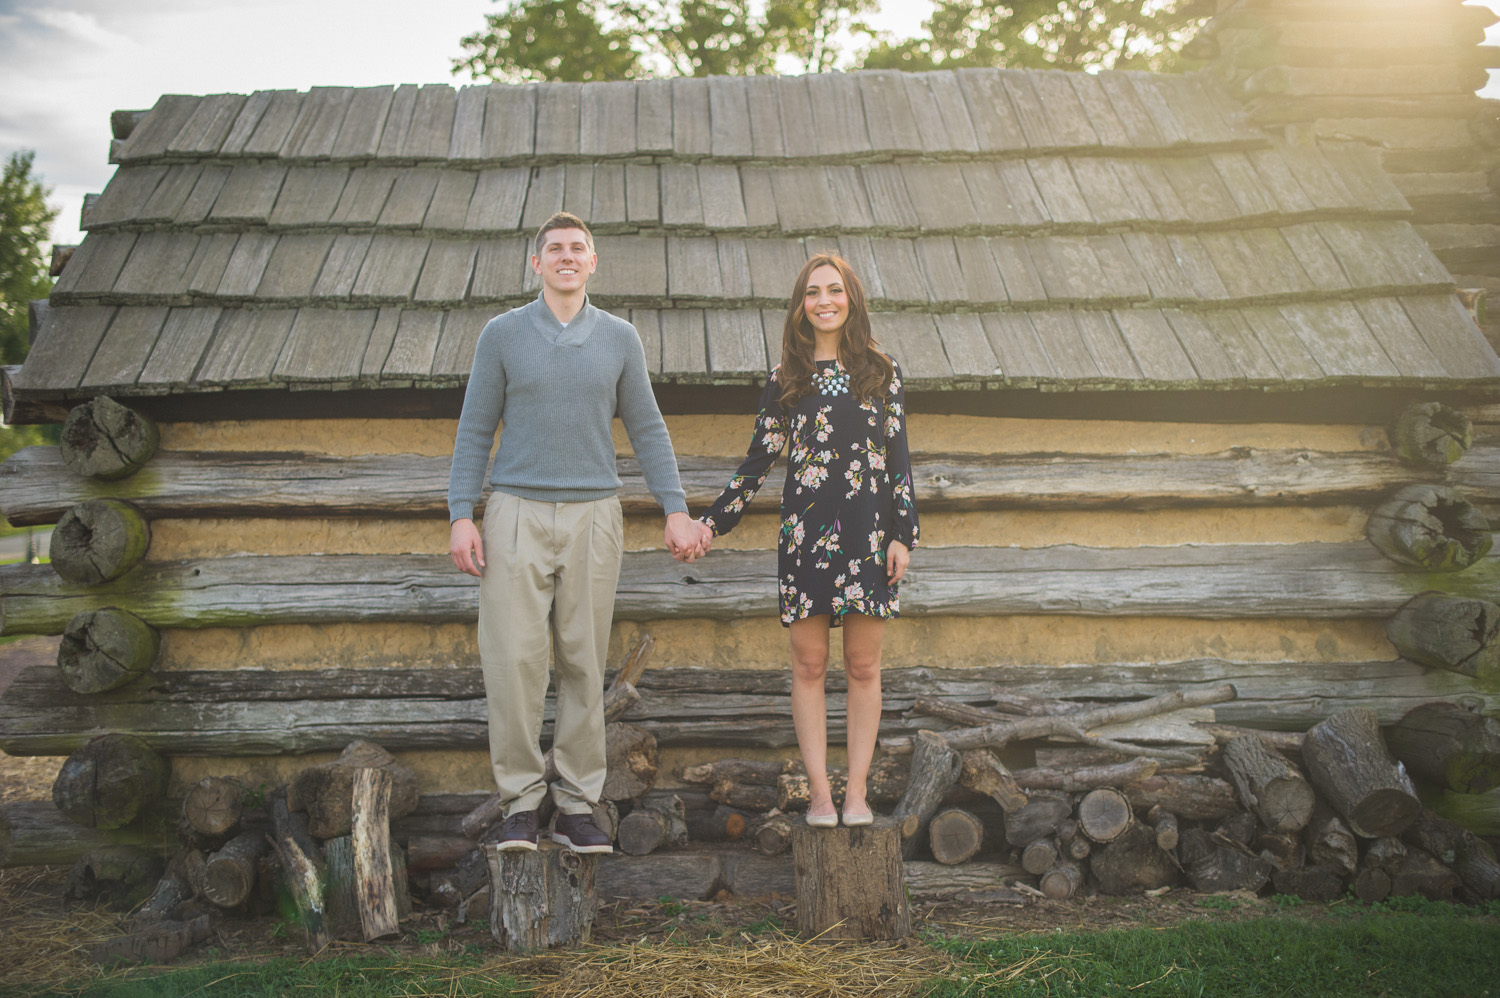 valley-forge-park-engagement-session-6.jpg